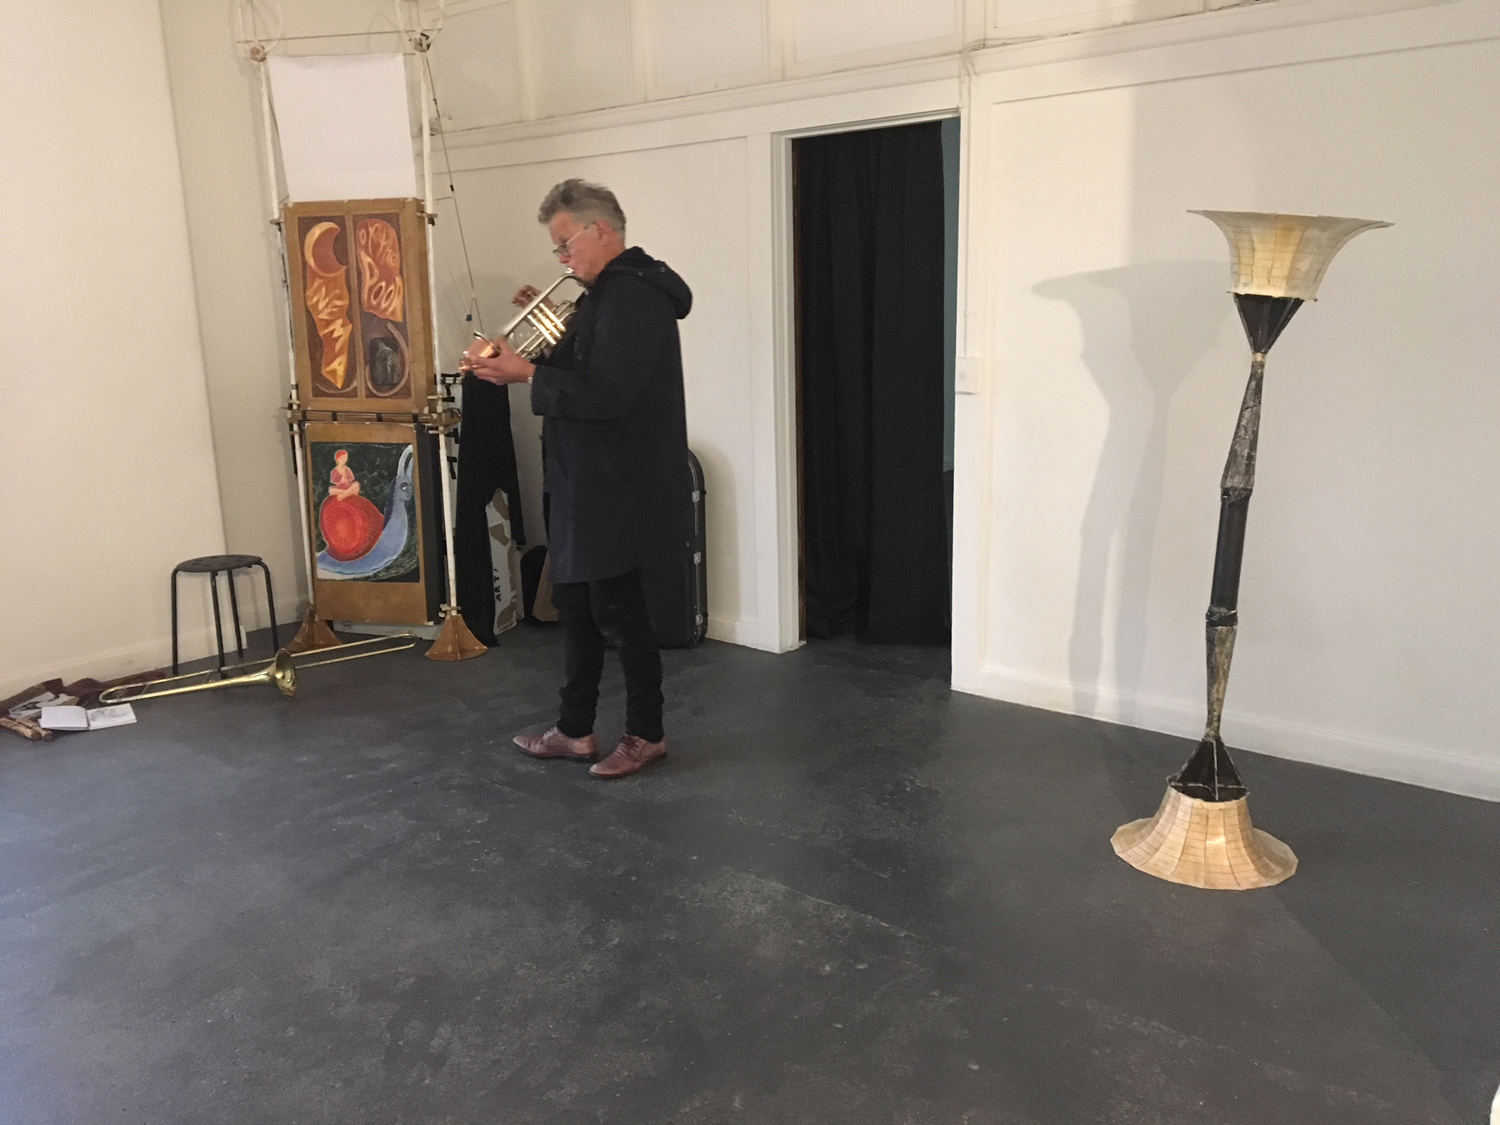 Gerard Crewdson,  Serpentsongs/Windshadows,  artist performance with sound sculptures, BLINDSIDE 2018. Courtesy the artist and participants.